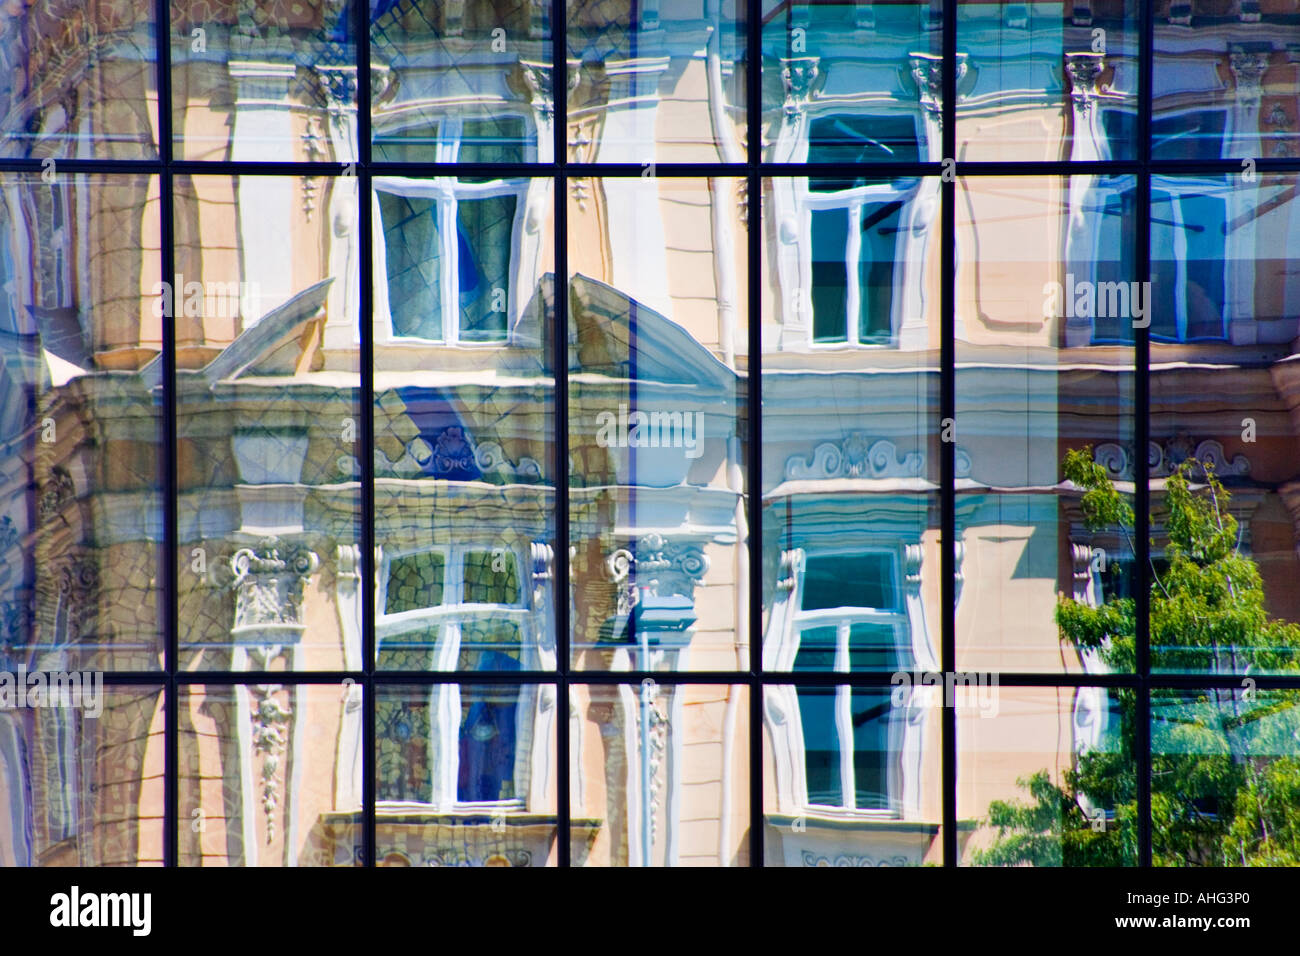 Contrasts in a city - Stock Image